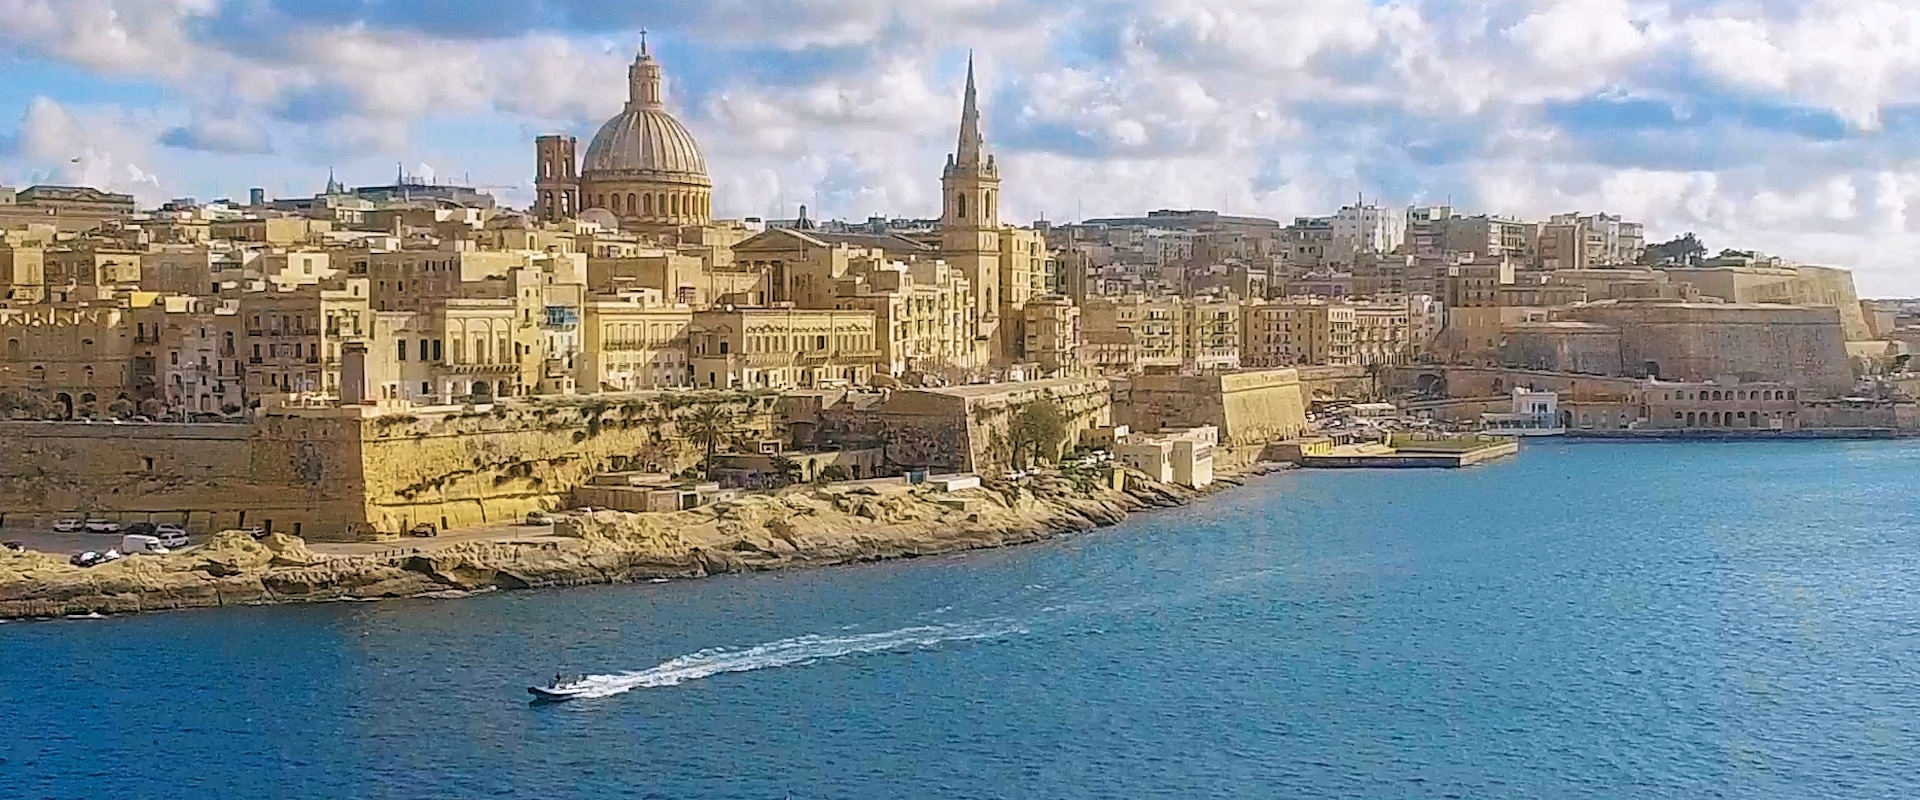 Valetta, Malta's capital - Aerial view